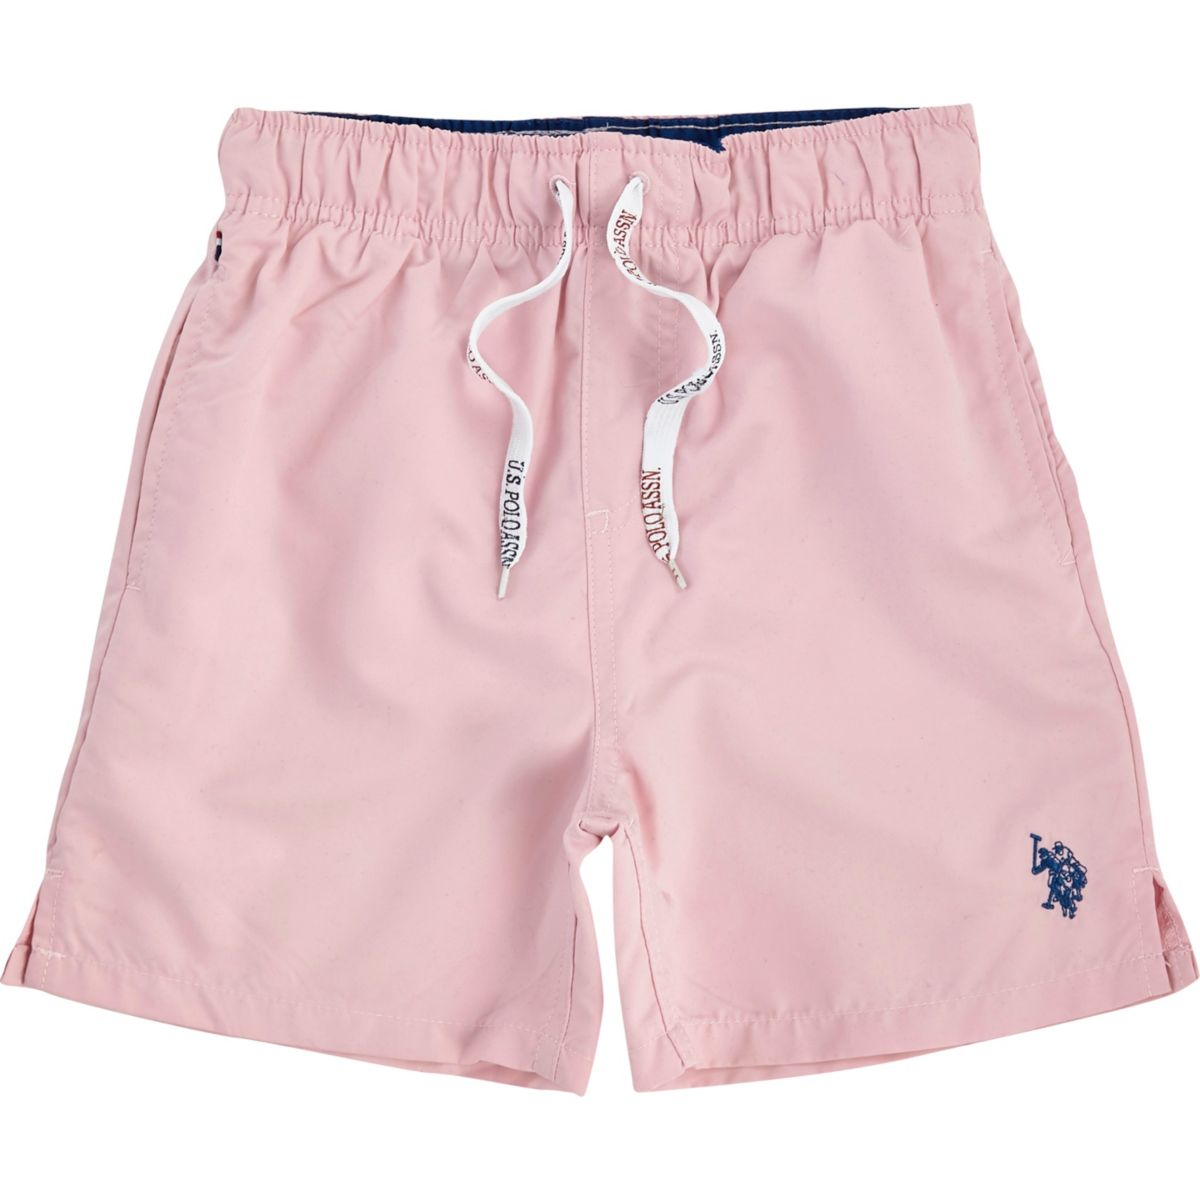 Boys pink U.S. Polo Assn. swim shorts